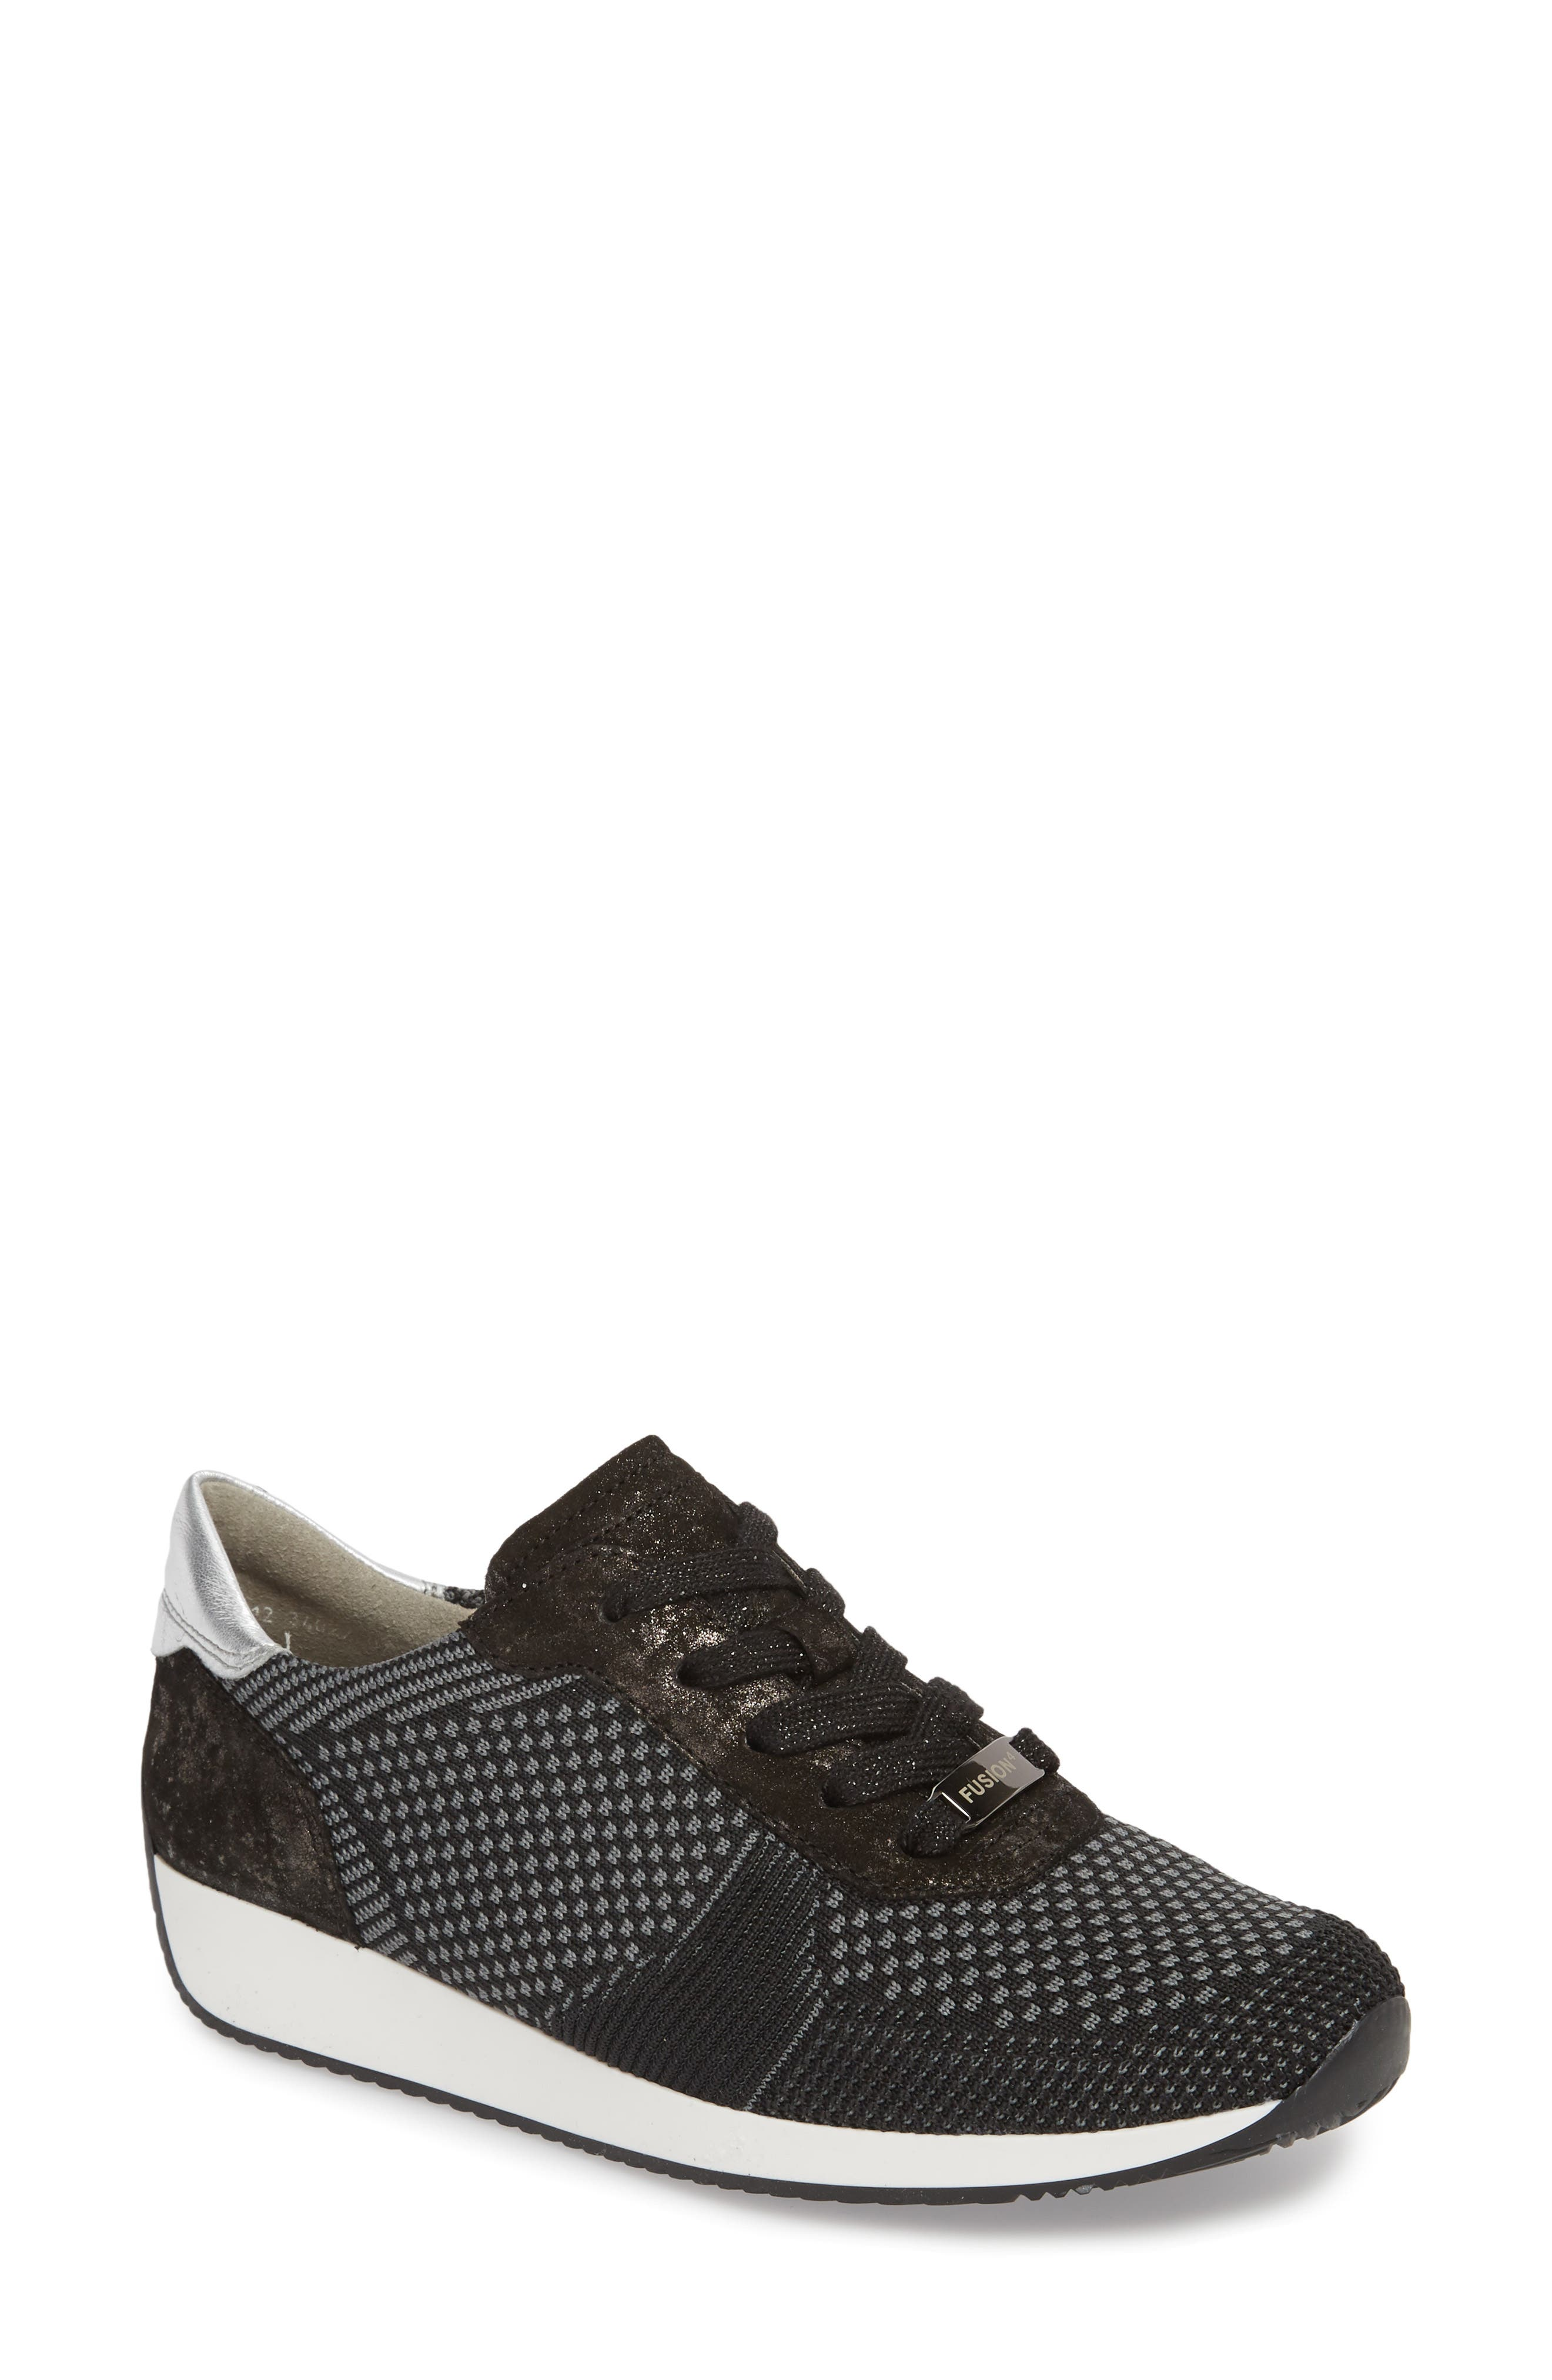 Lilly Sneaker,                             Main thumbnail 1, color,                             BLACK FABRIC